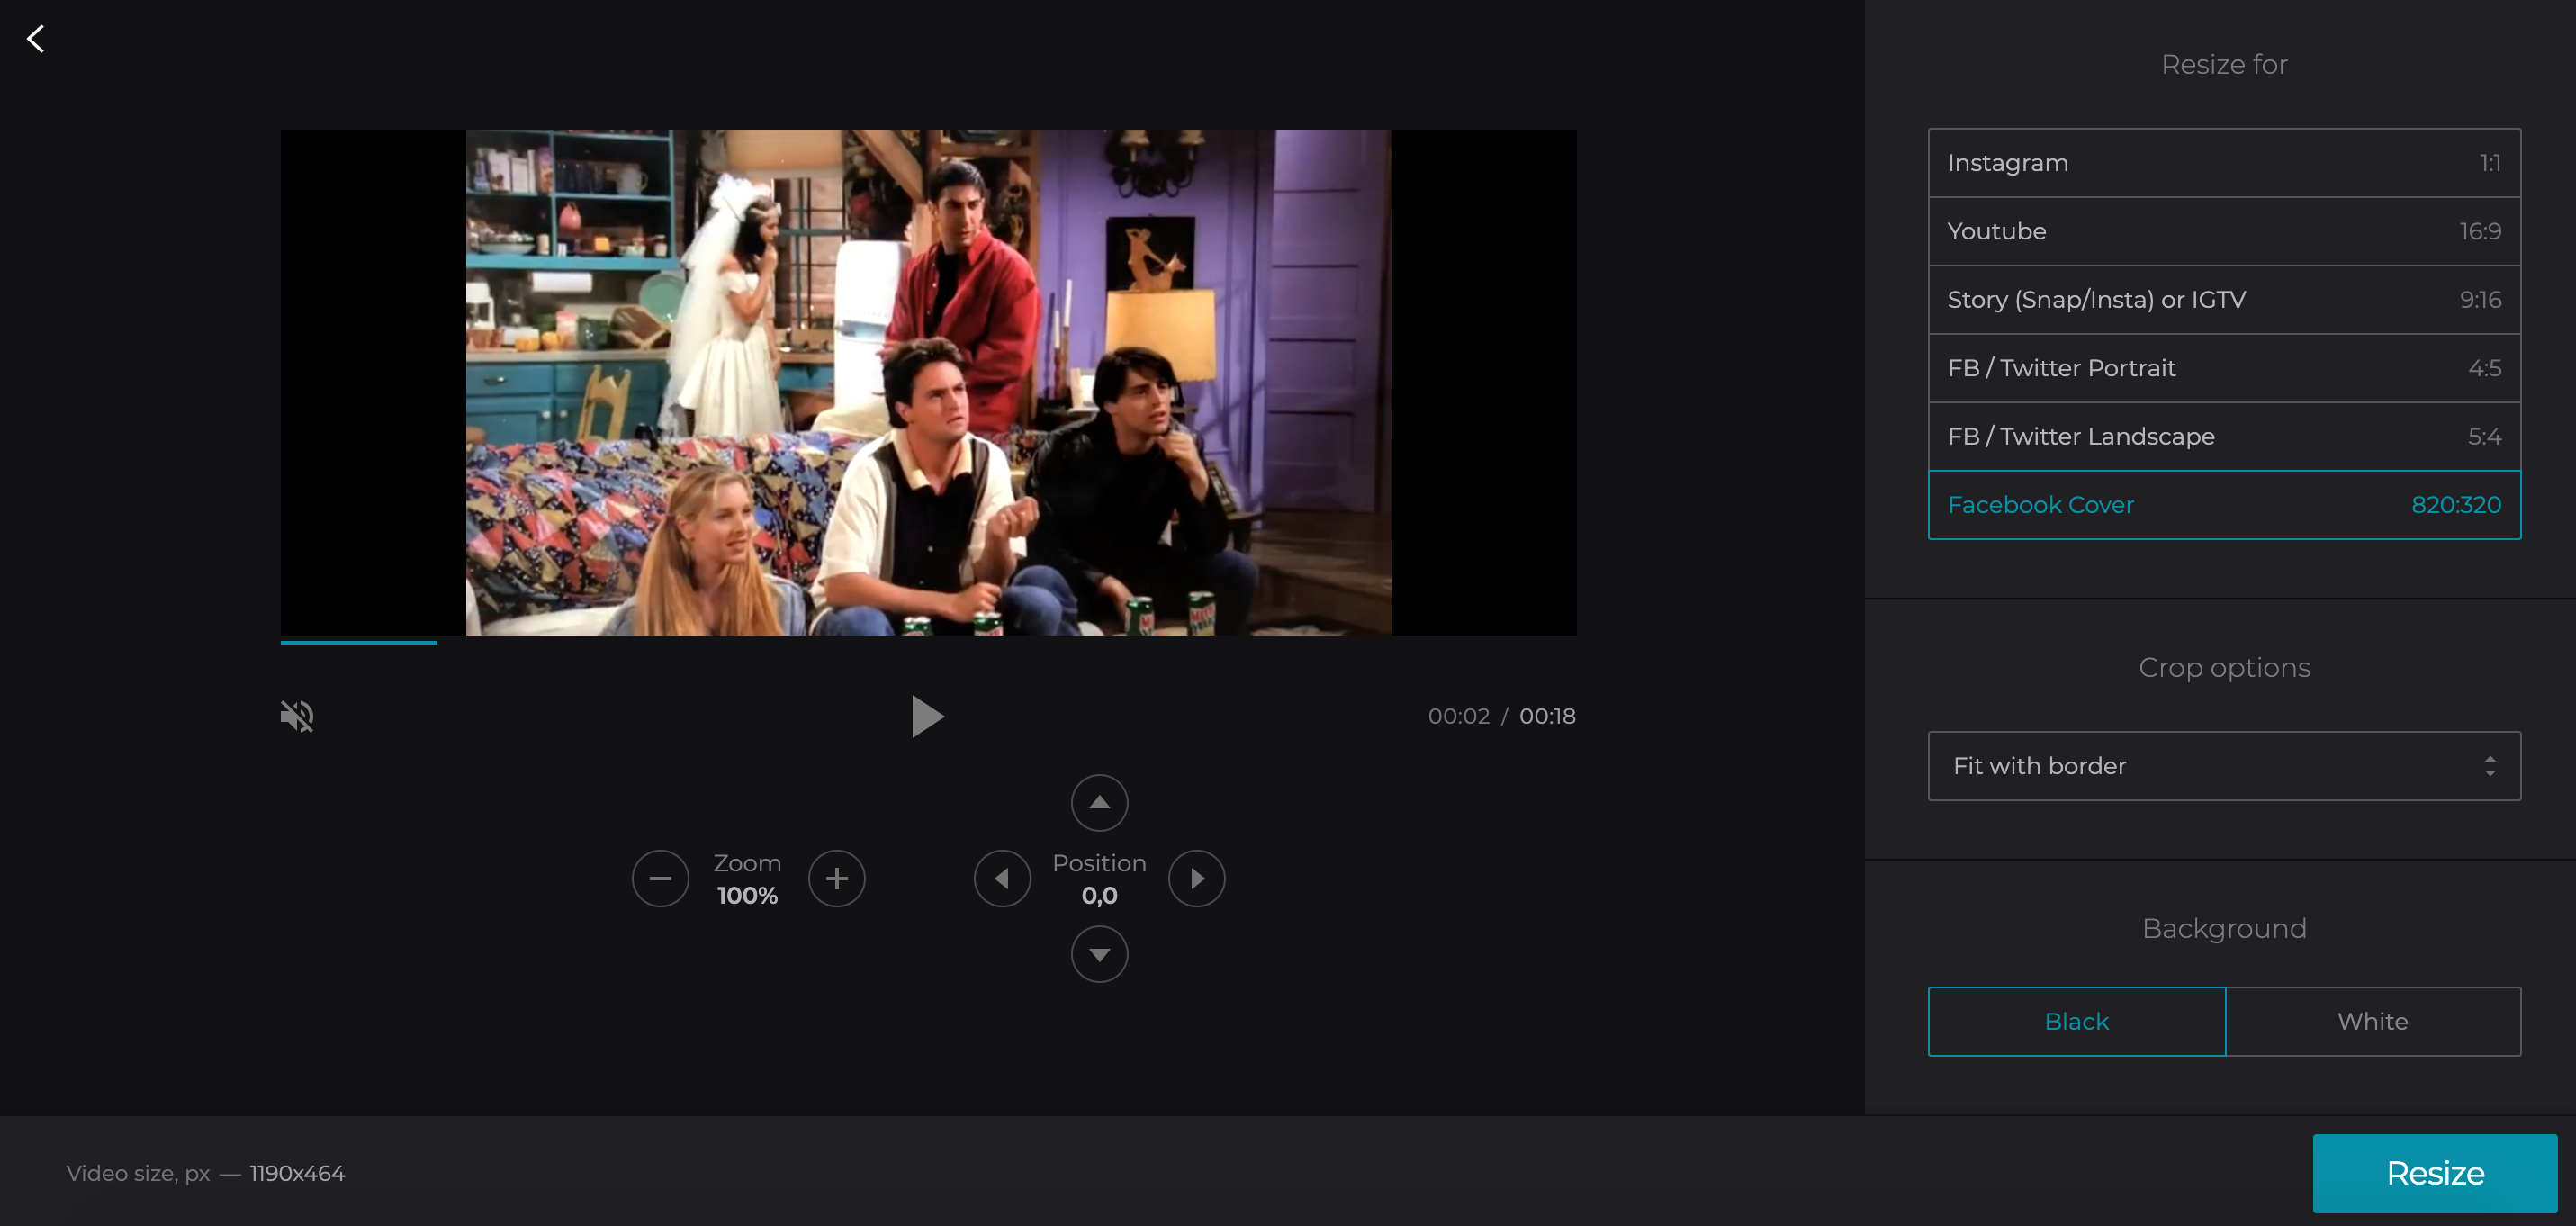 Resize video to create Facebook cover